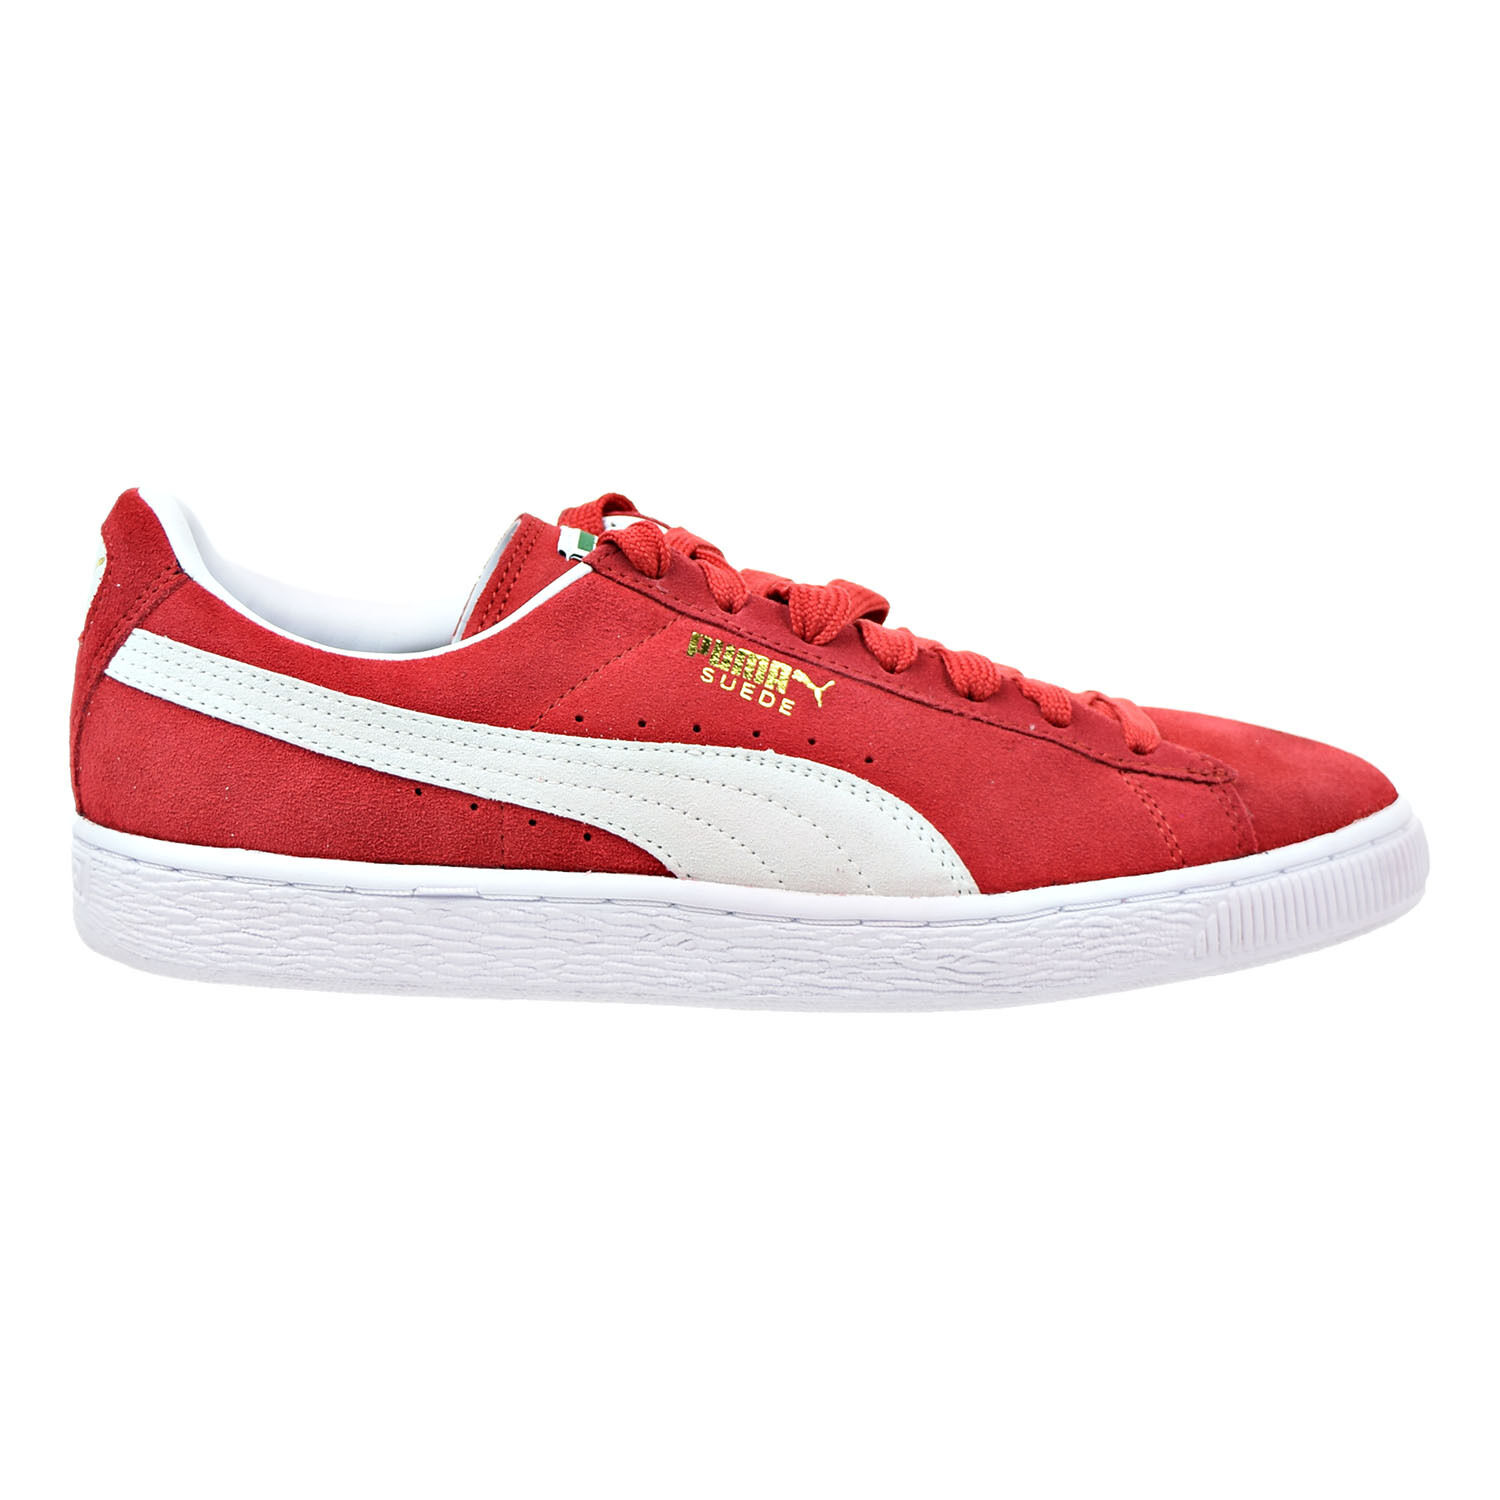 Puma Suede Classic hommes Sneakers High Risk rouge -blanc 352634-65